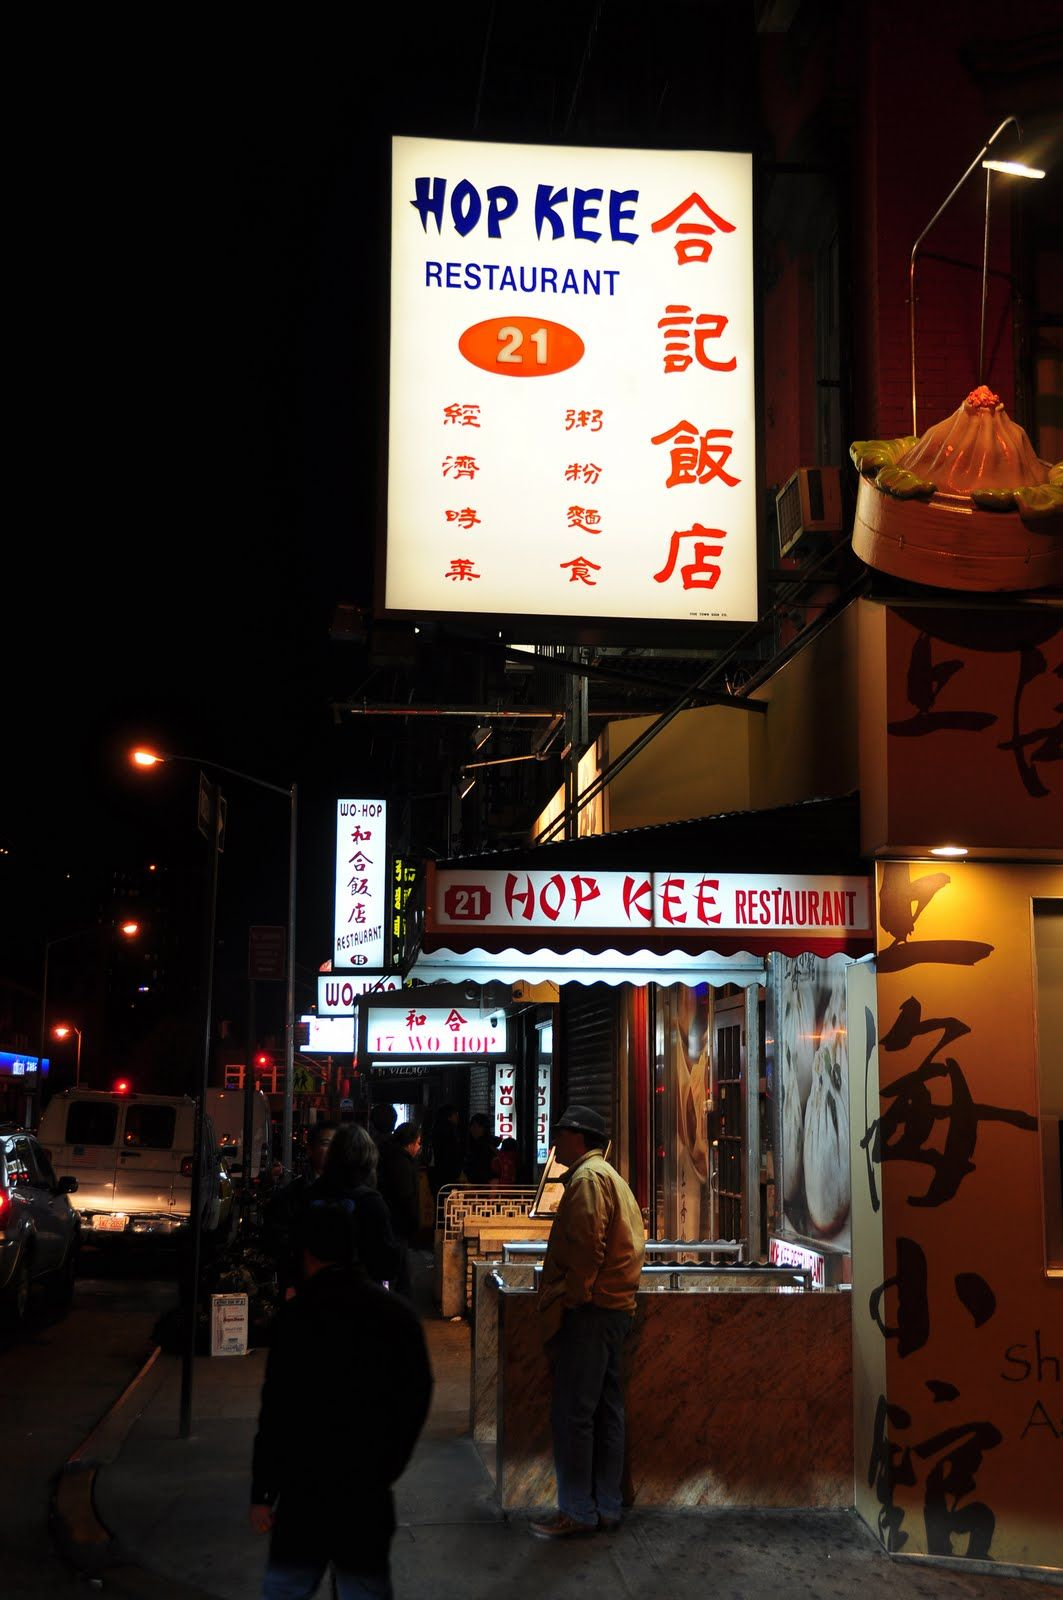 My Absolute Favorite Chinese Restaurant Open Til 2am But They Used To Stay For Us After Clubbing In Nyc Hop Kee Chinatown New York City